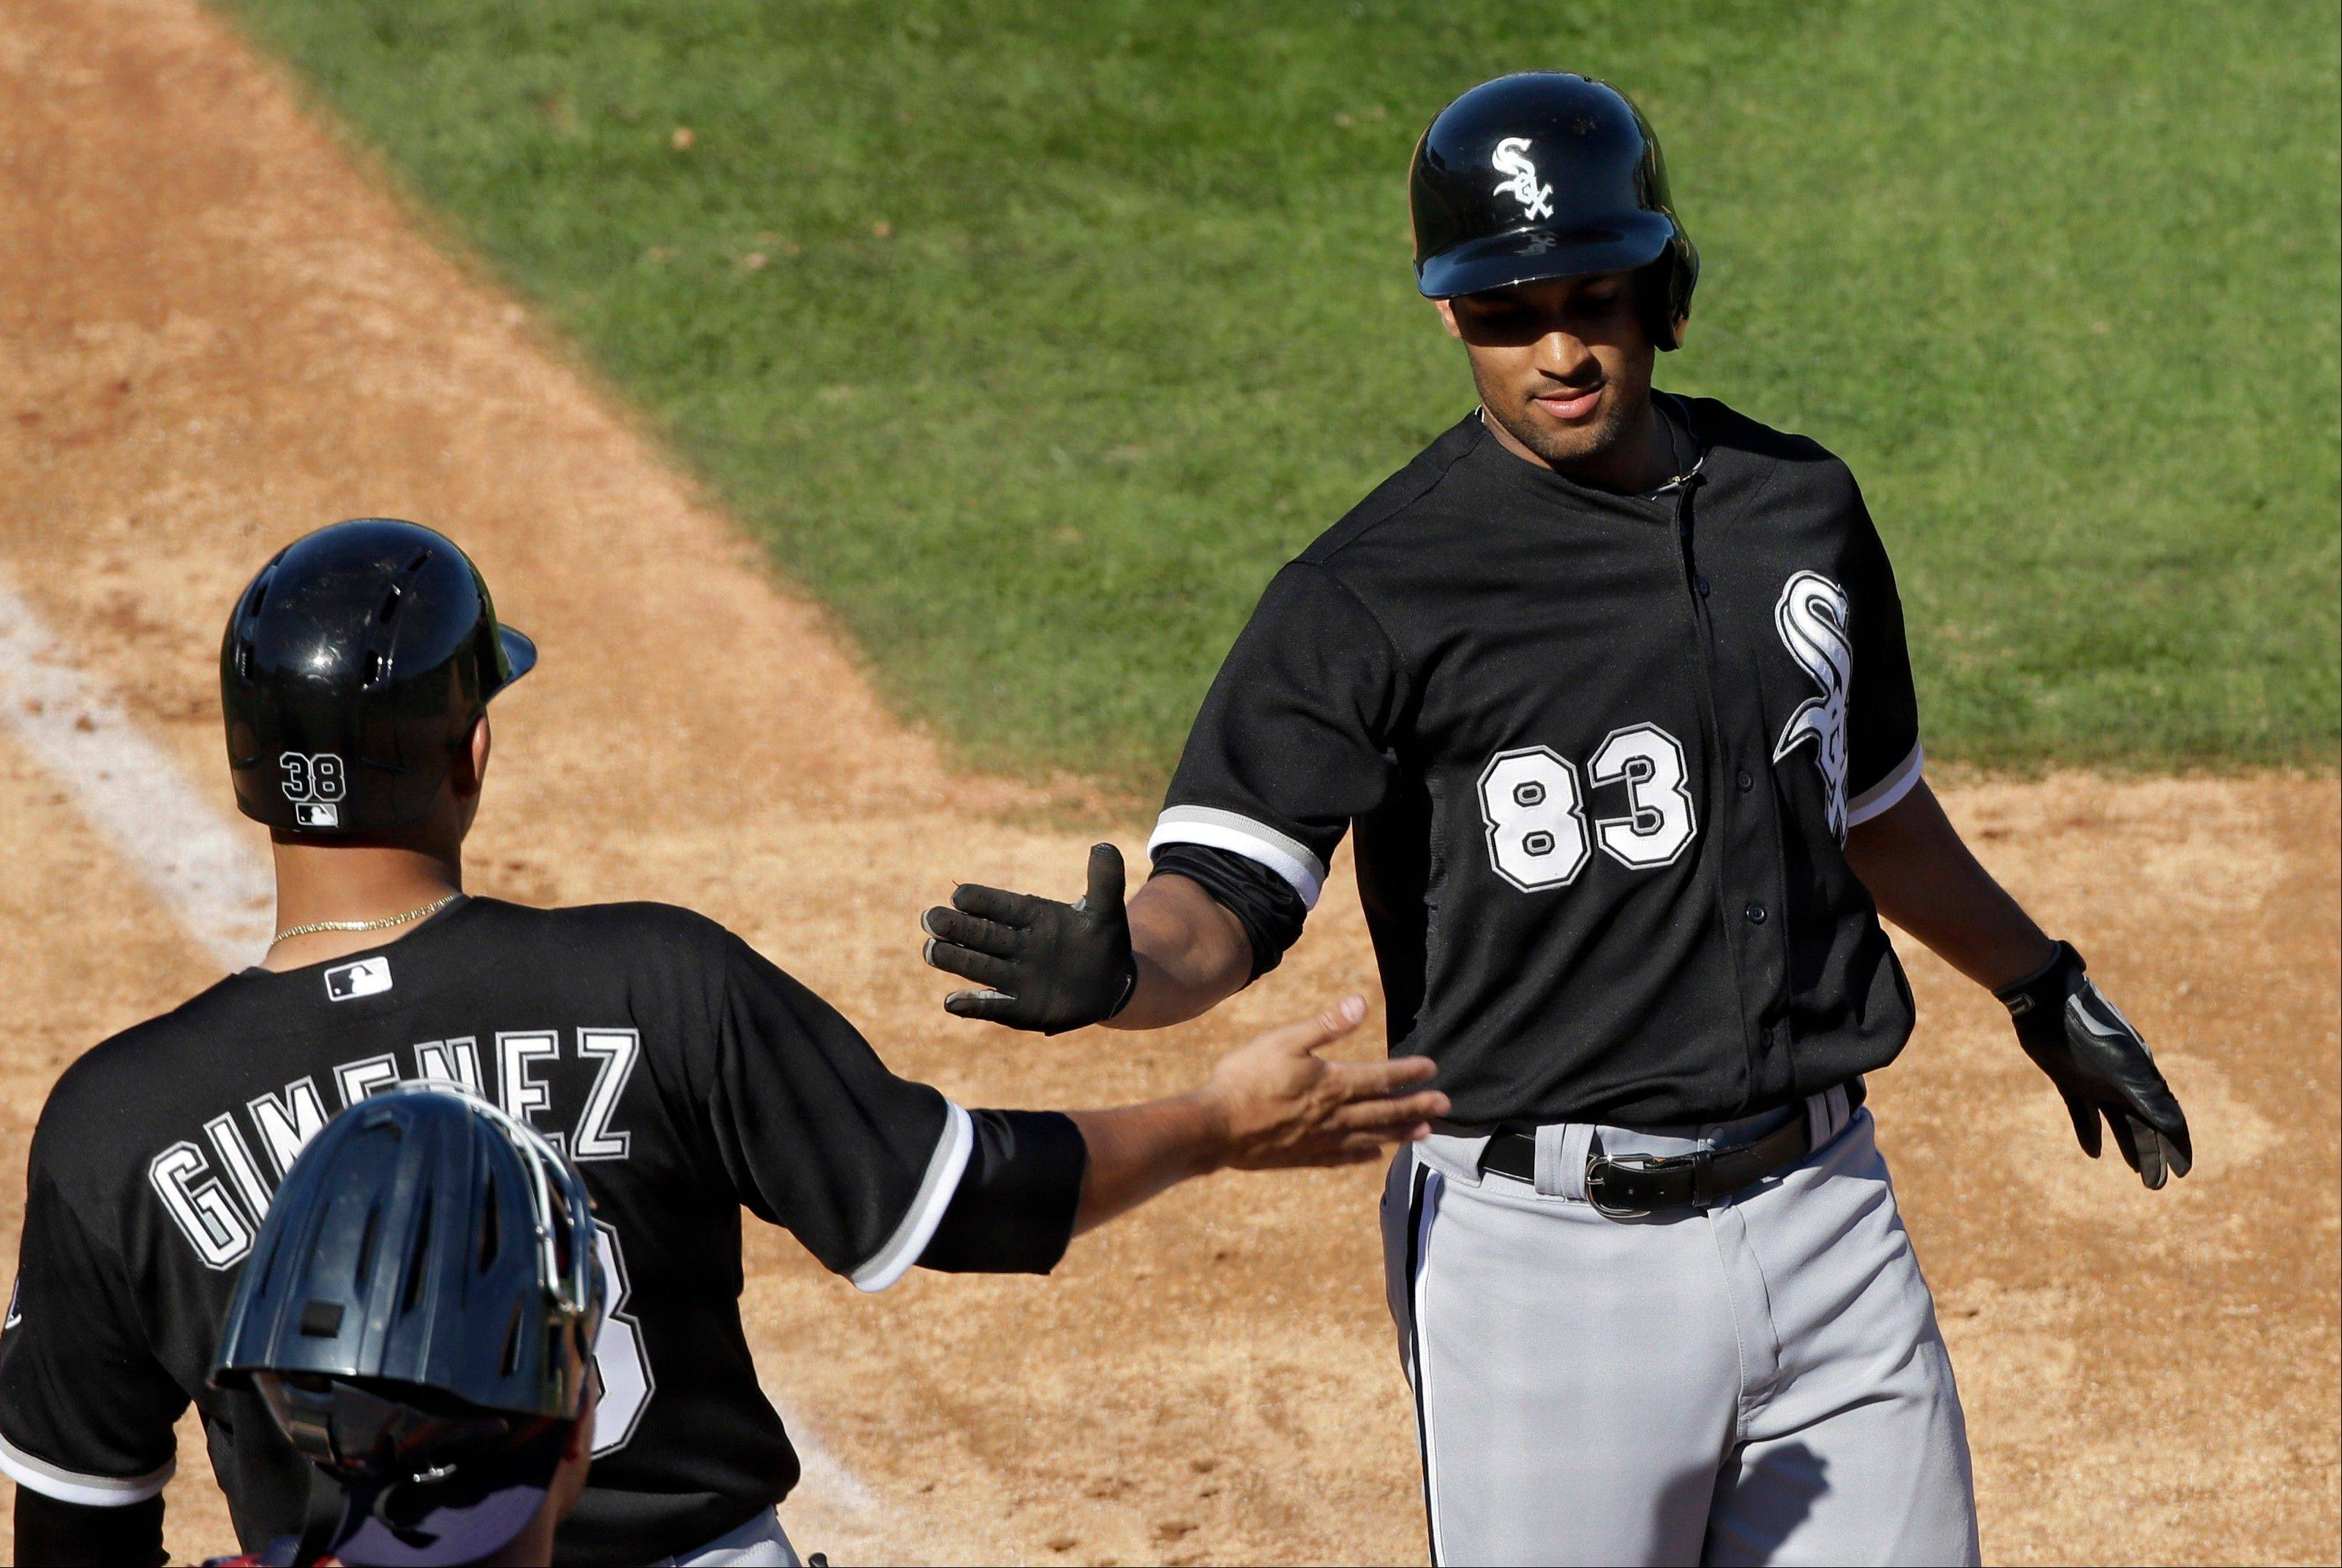 Chicago White Sox's Marcus Semien (83) is greeted at home by Hector Gimenez after hitting a 3-run home run off Cleveland Indians relief pitcher David Huff in the sixth inning of an exhibition spring training baseball game Friday, March 1, 2013, in Goodyear, Ariz.